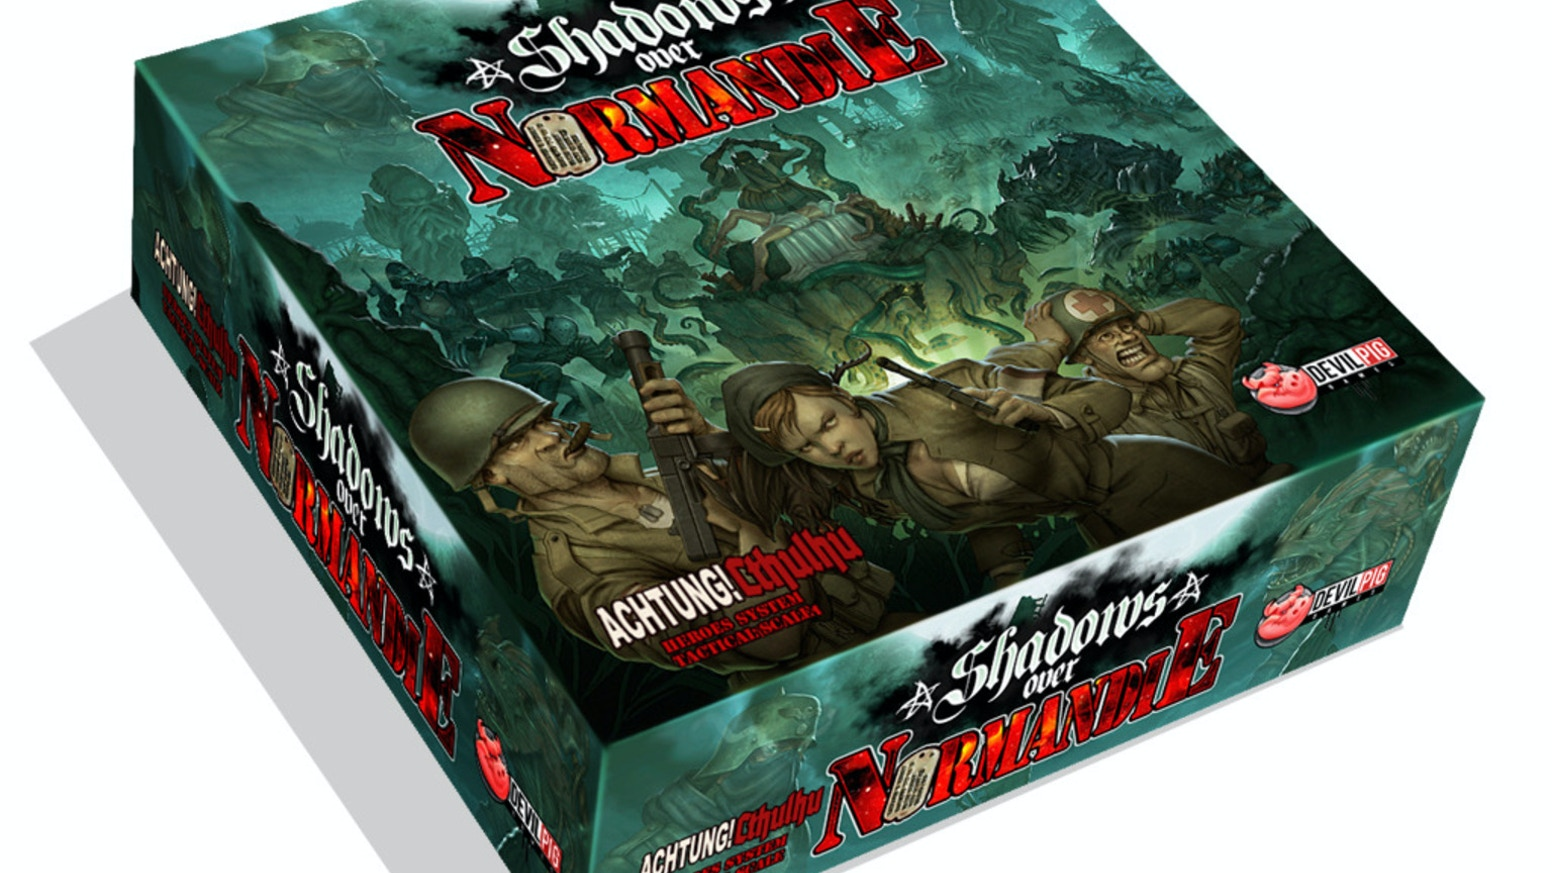 When Heroes of Normandie & Achtung! Cthulhu meet for a boardgame, it gives you Shadows over Normandie, a new epic tale of World War 2.